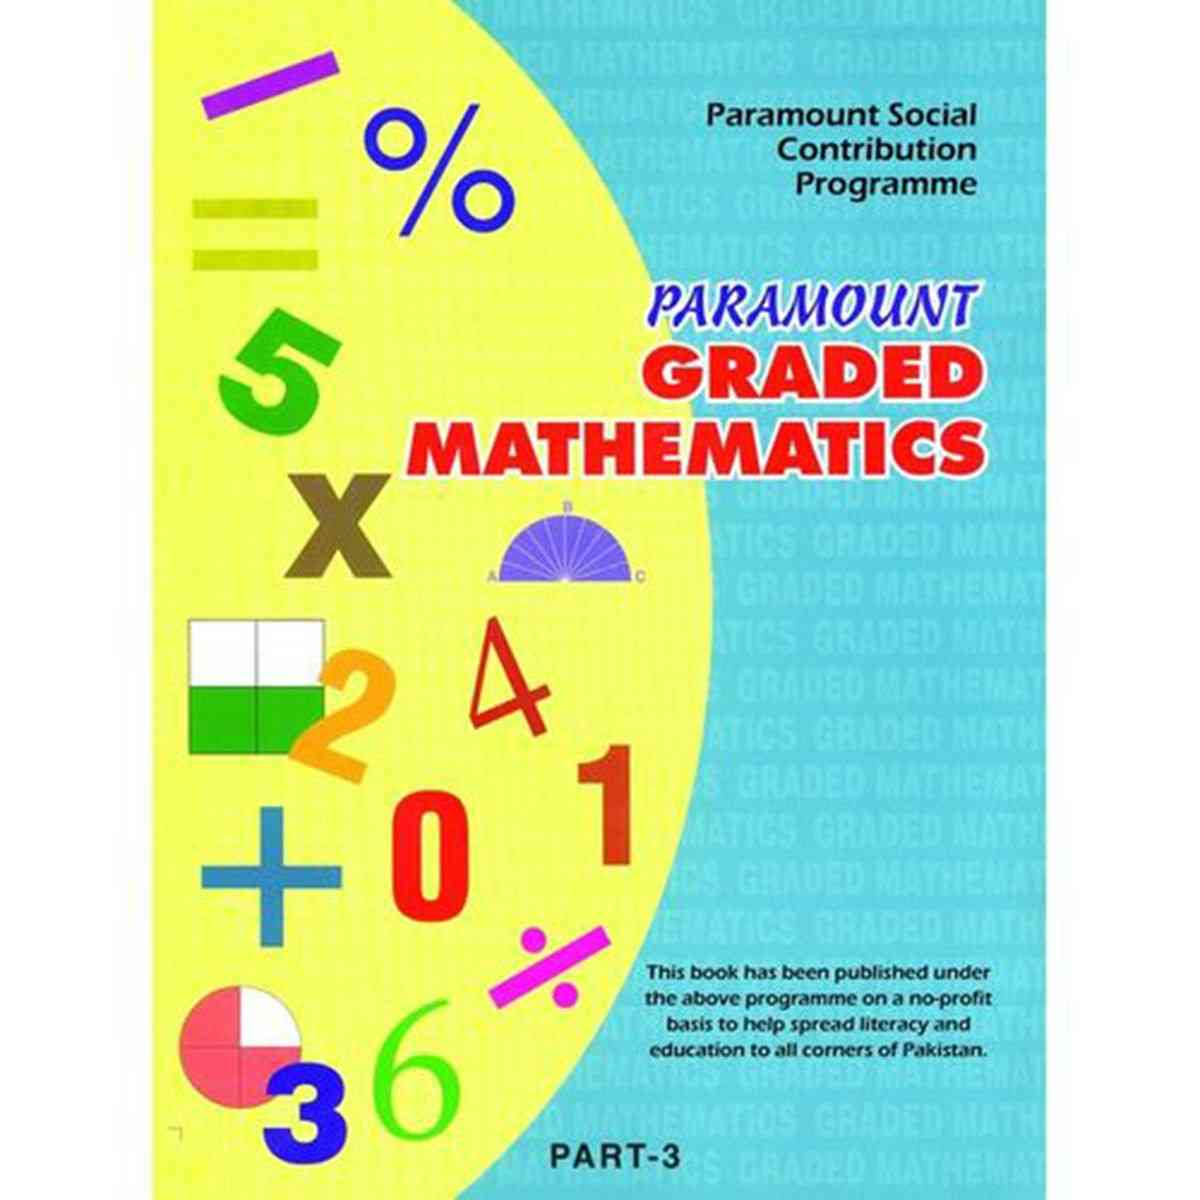 Paramount Graded Mathematics: Social Contribution Programme Part 3